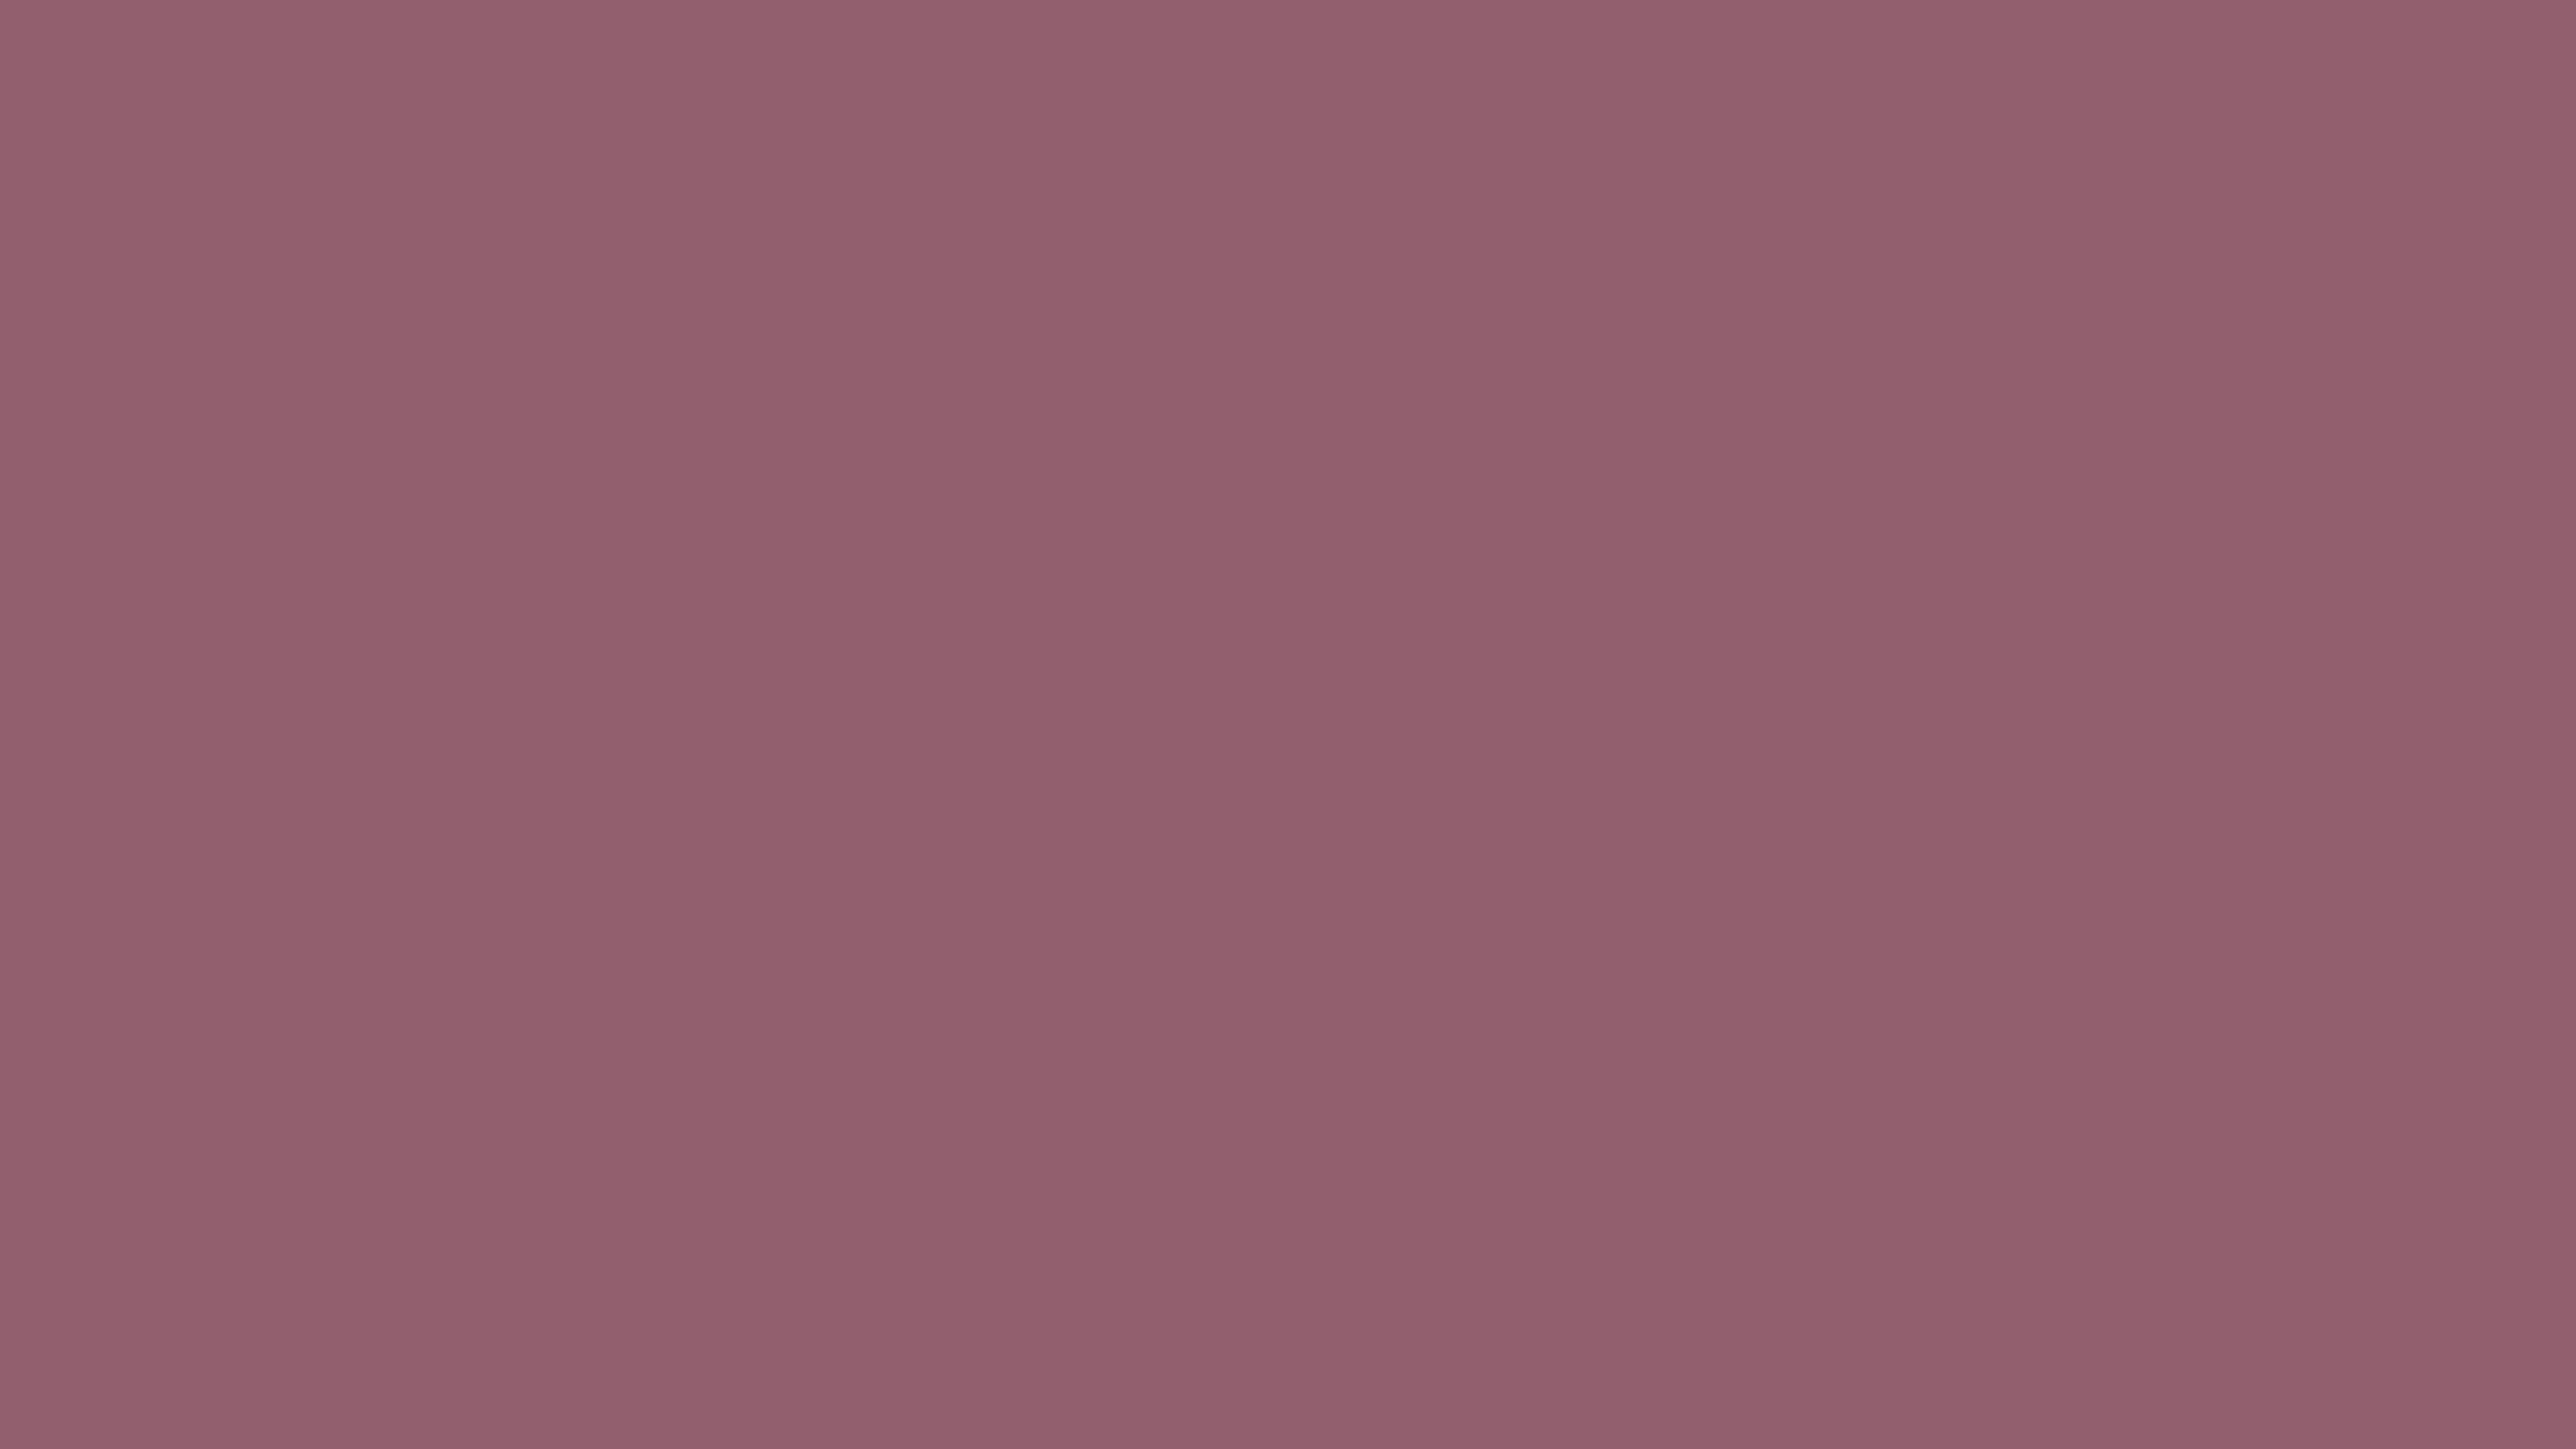 Mauve Taupe Solid Color Background Wallpaper 5120x2880